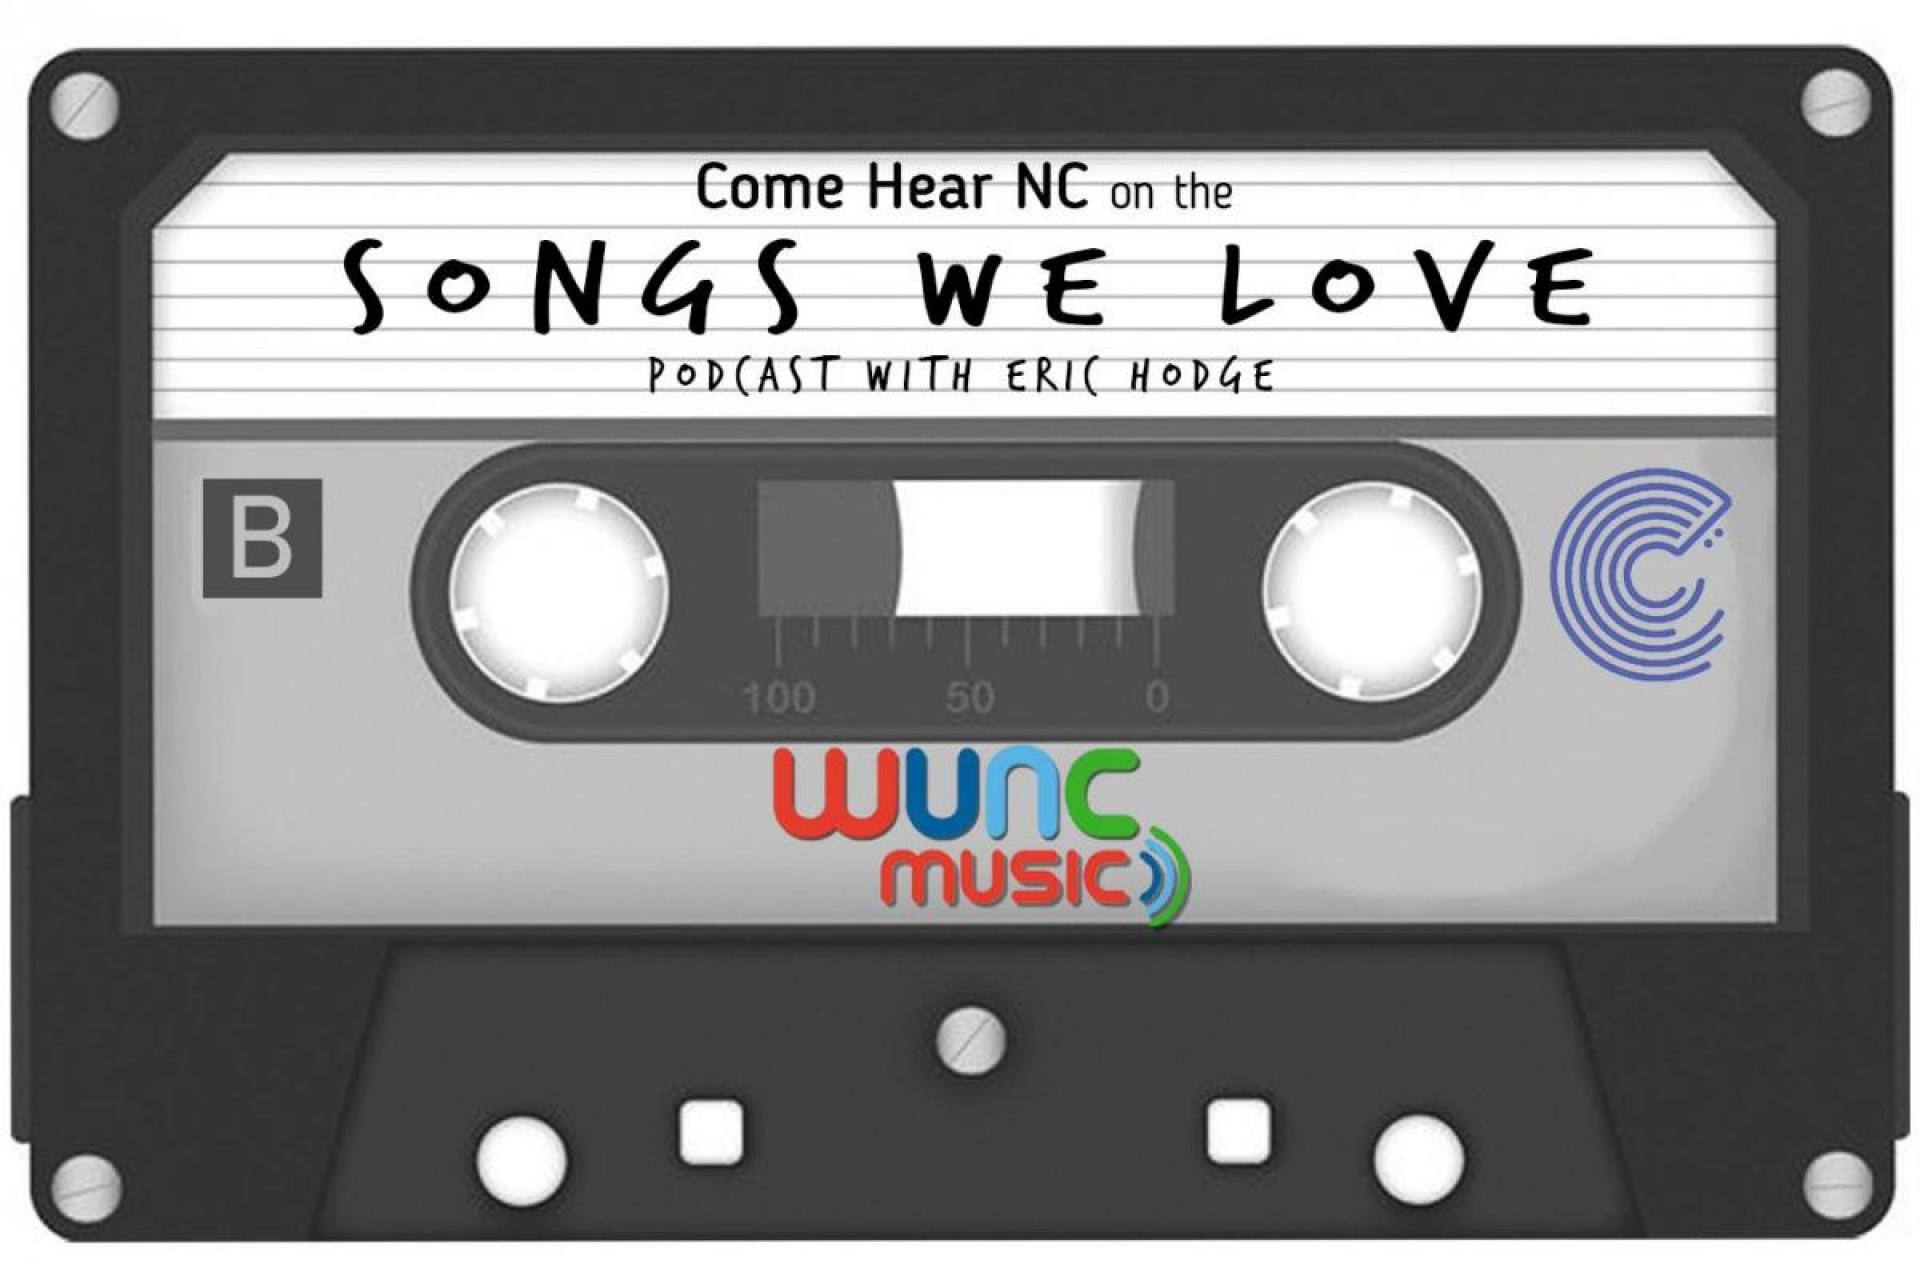 WUNC's Songs We Love Come Hear NC Edition Podcast Logo